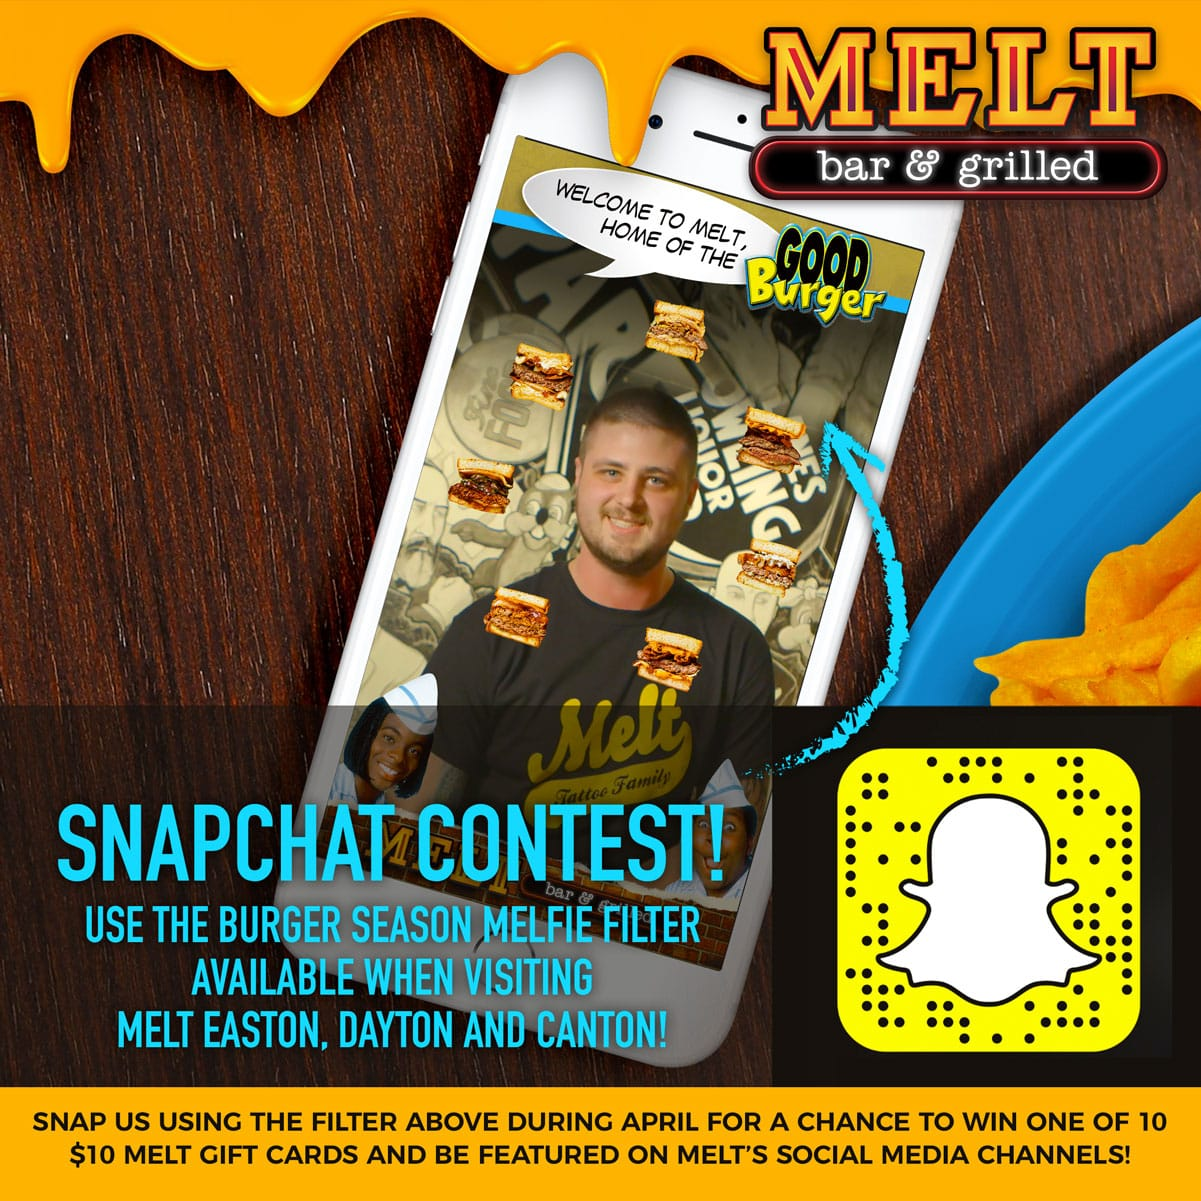 Melt is Celebrating Old Skool Burger Season With a Snapchat Contest!